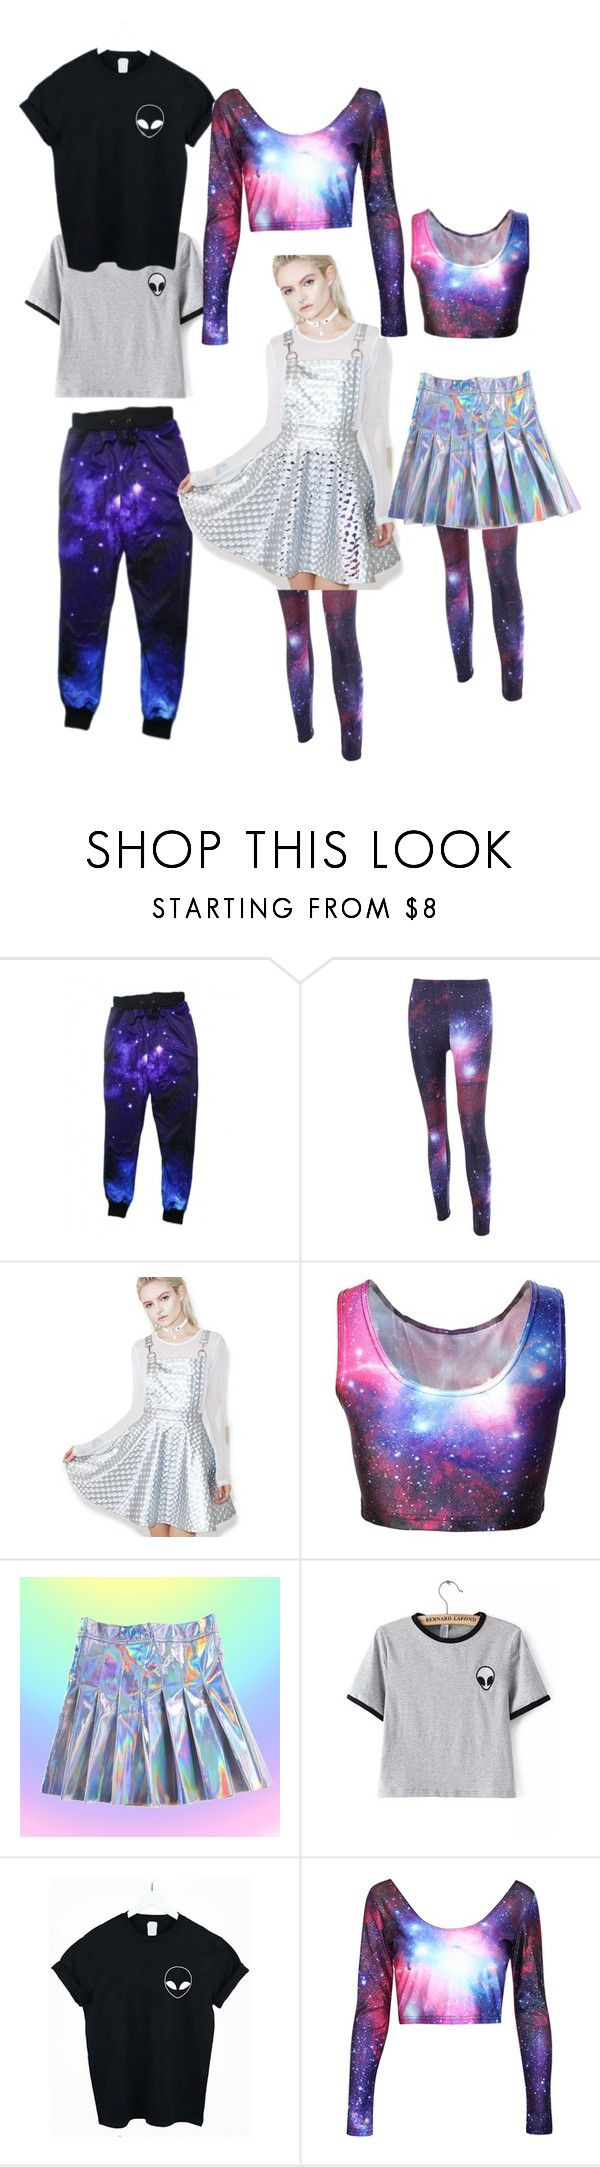 """Intergalactic"" by rain4583 ❤ liked on Polyvore featuring WithChic, Current Mood, galaxy, Leggings and Alien"